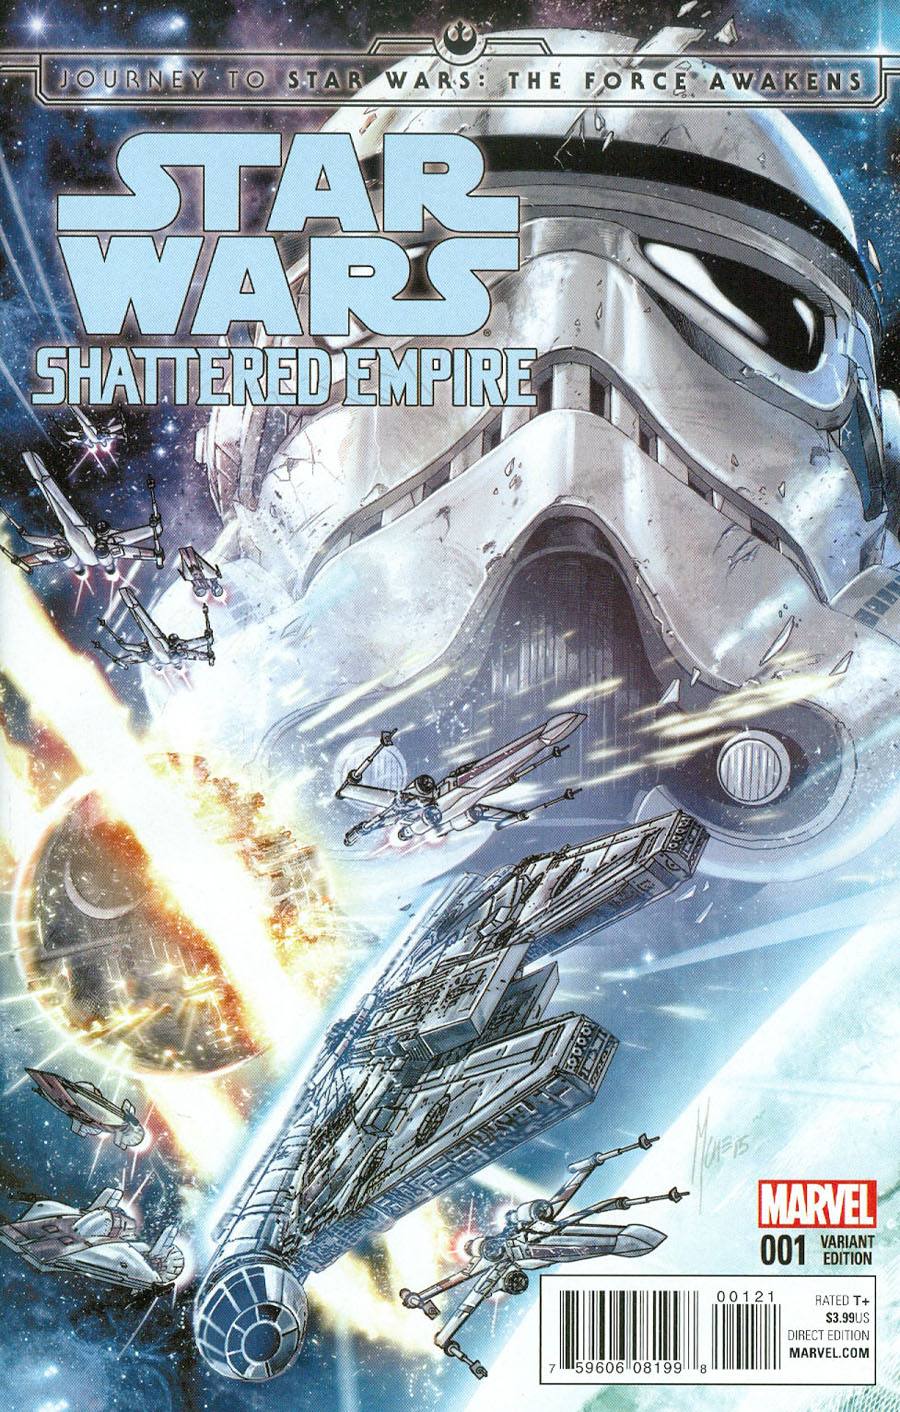 Journey To Star Wars Force Awakens Shattered Empire #1 Cover D Incentive Marco Checchetto Variant Cover